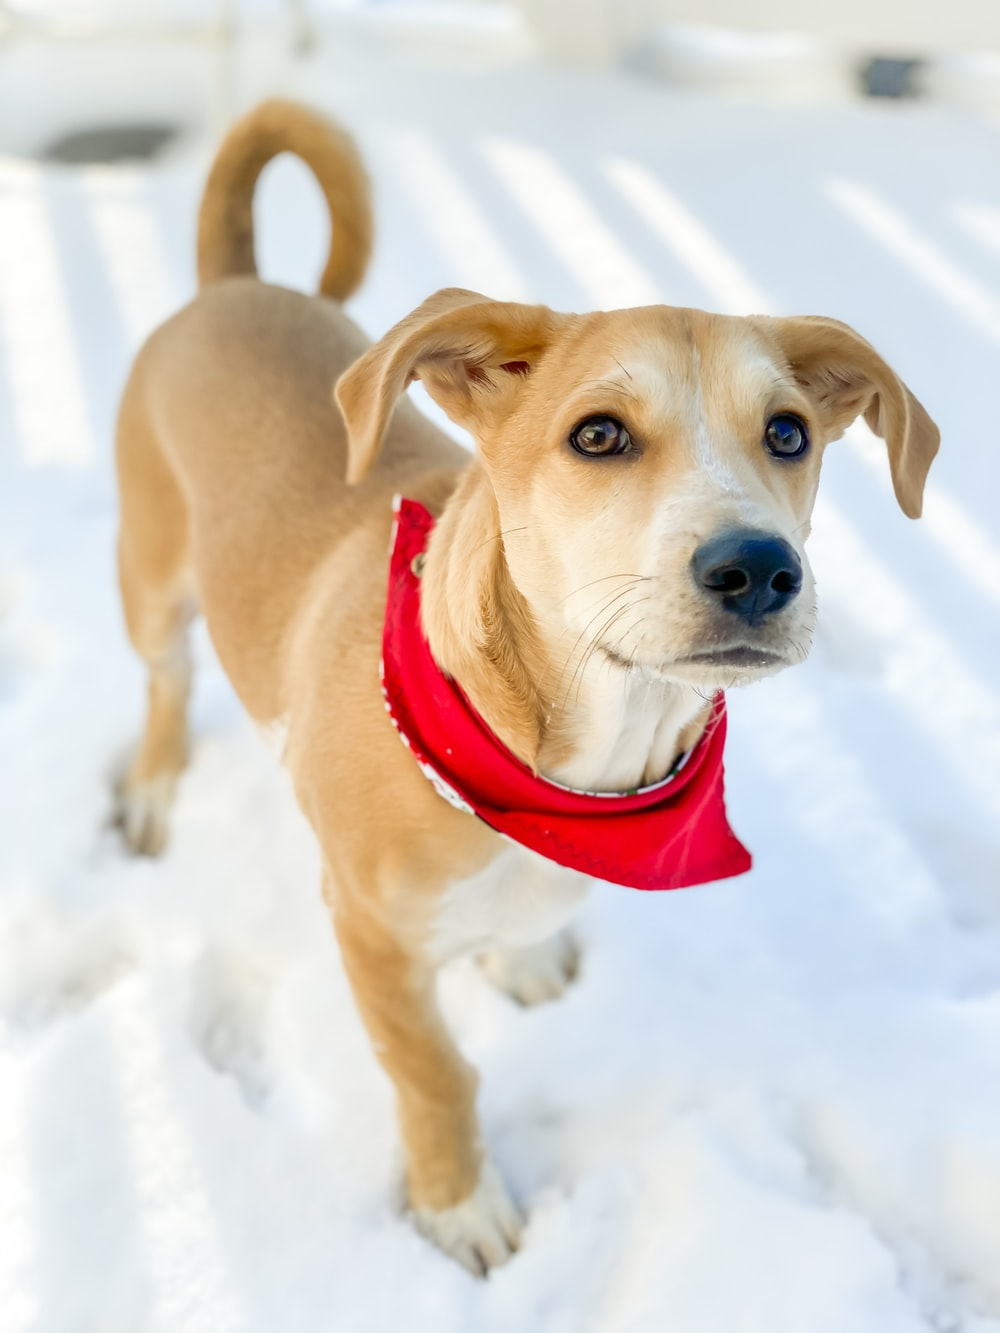 brown short coated medium sized dog on snow covered ground during daytime